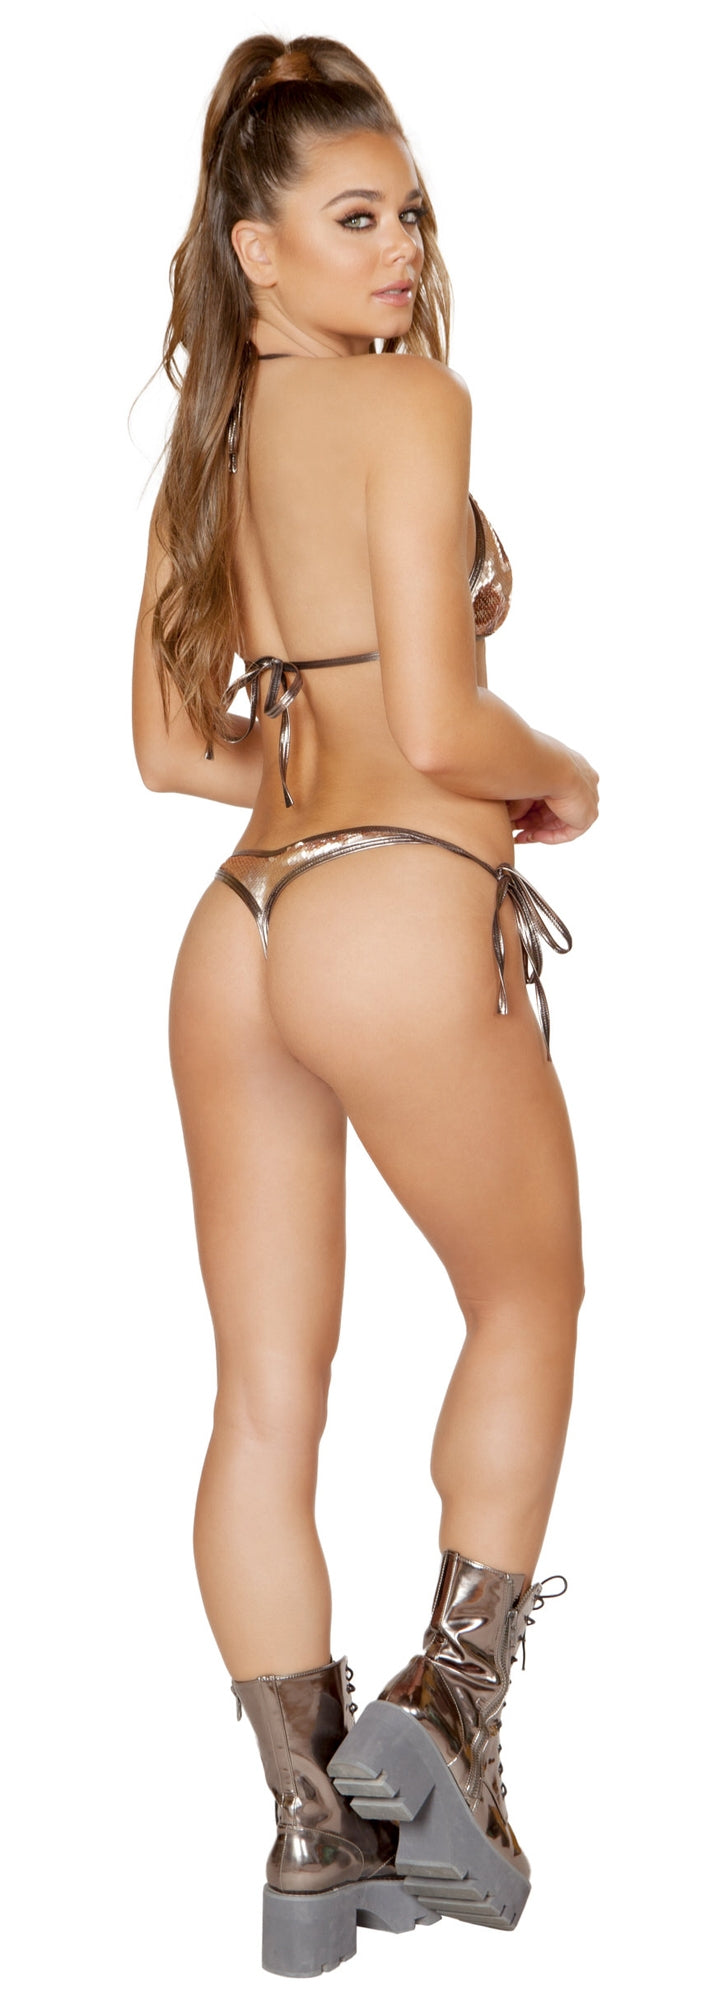 RM-3625-RG Rose gold low rise tie side sequin bikini back